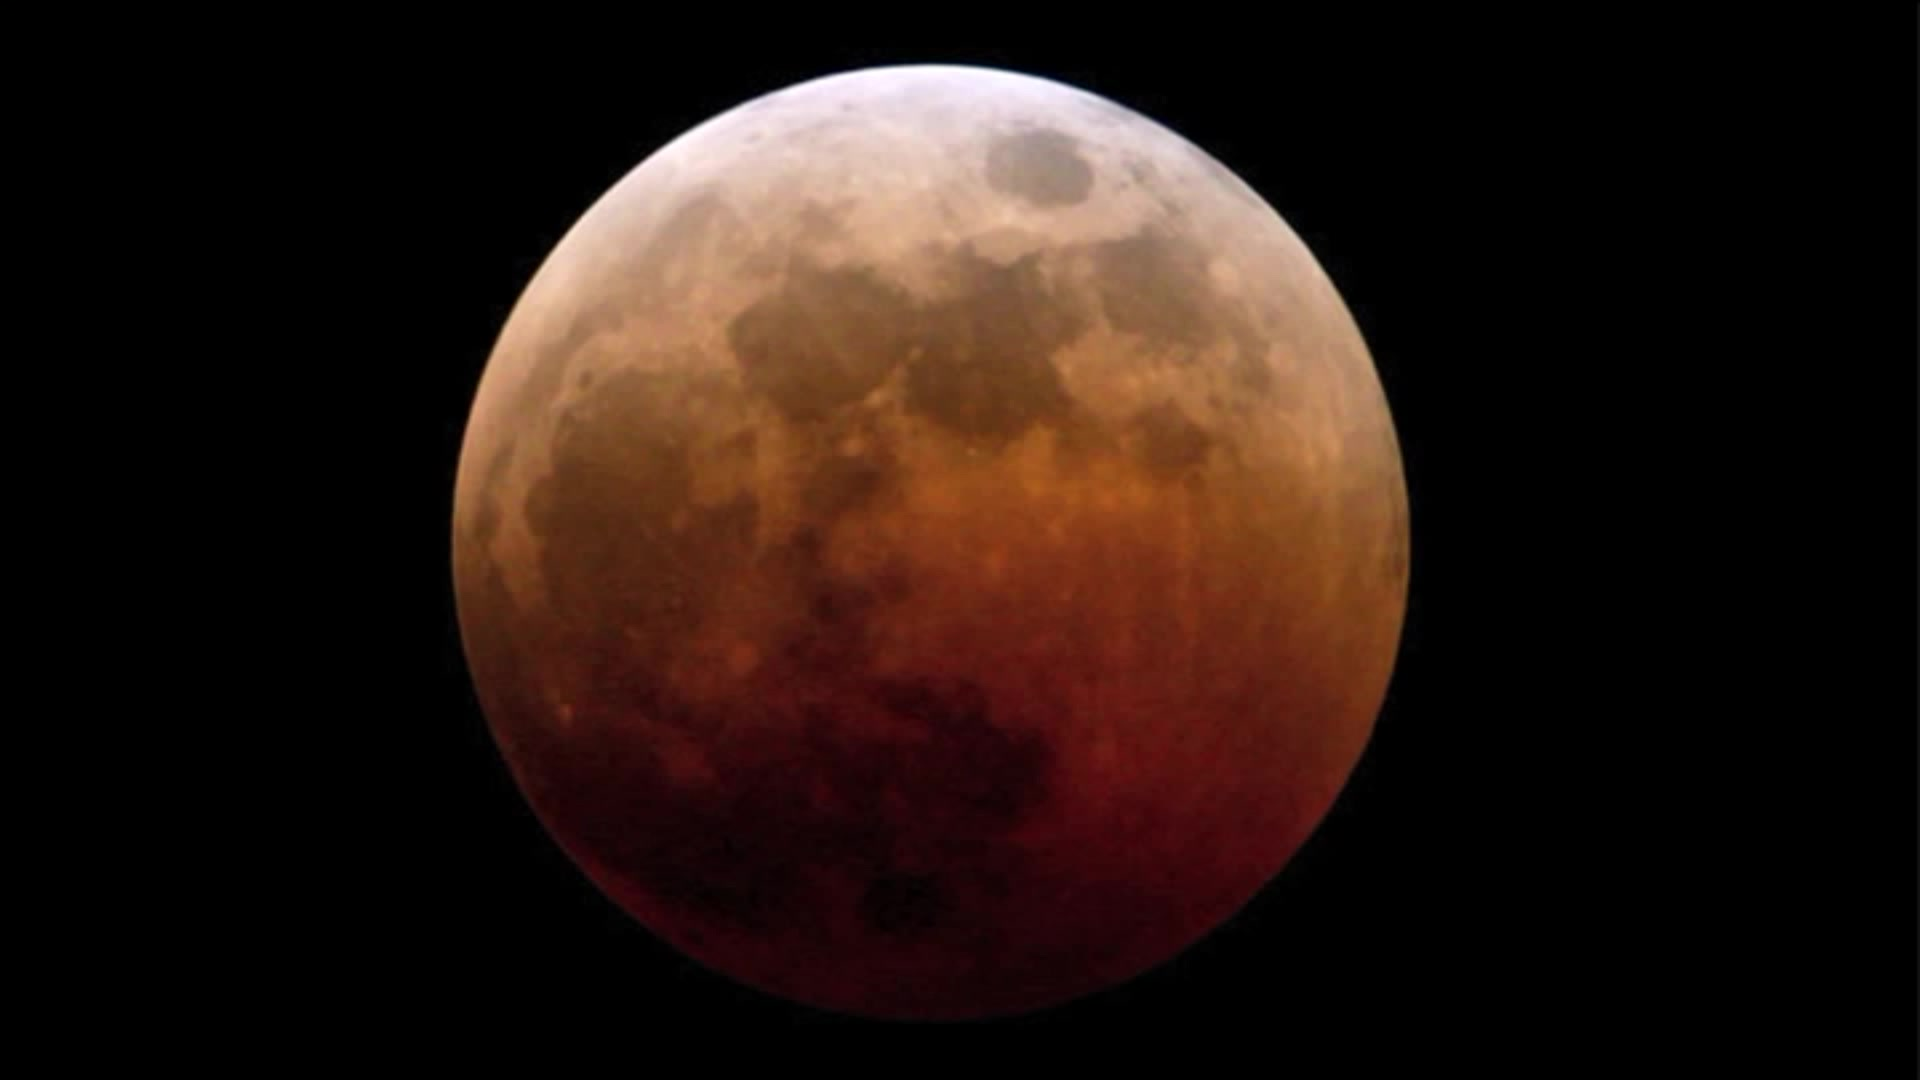 Are Four Blood Red Moons a Sign of the Apocolypse?